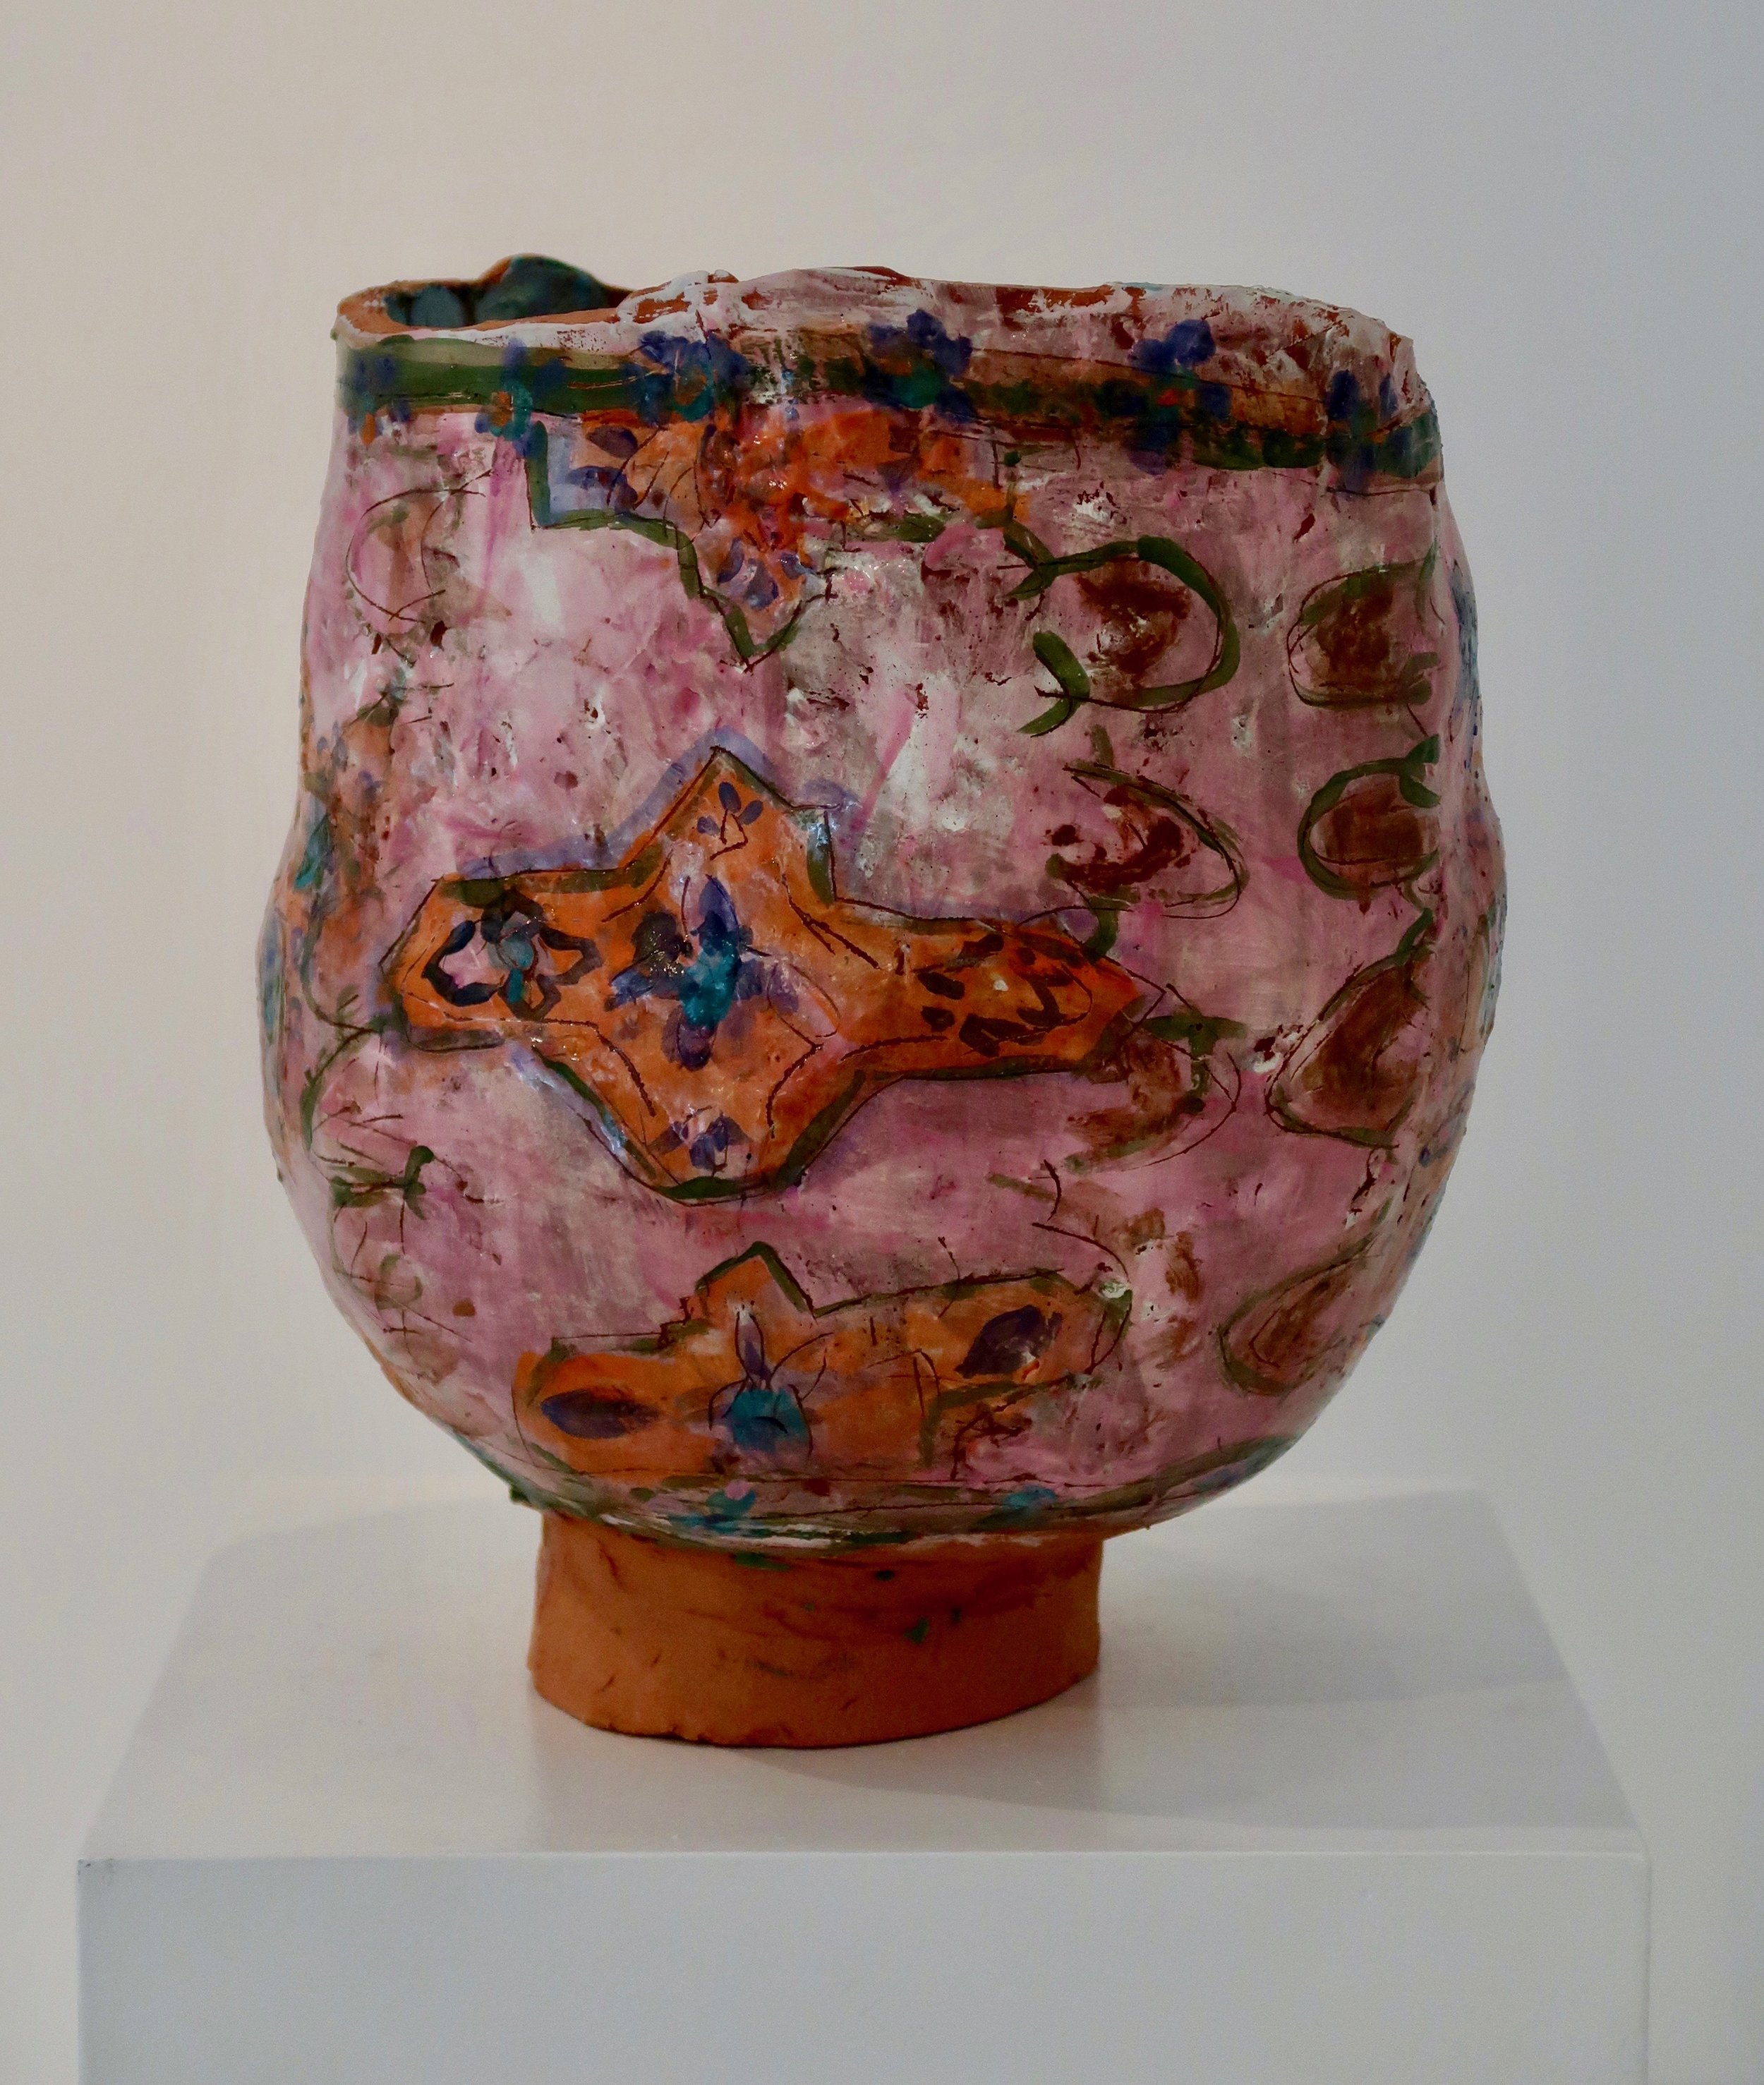 JR#09, Pink and Orange Tapestry, Glazed Stoneware, 13 x 10.6 in (1).jpg